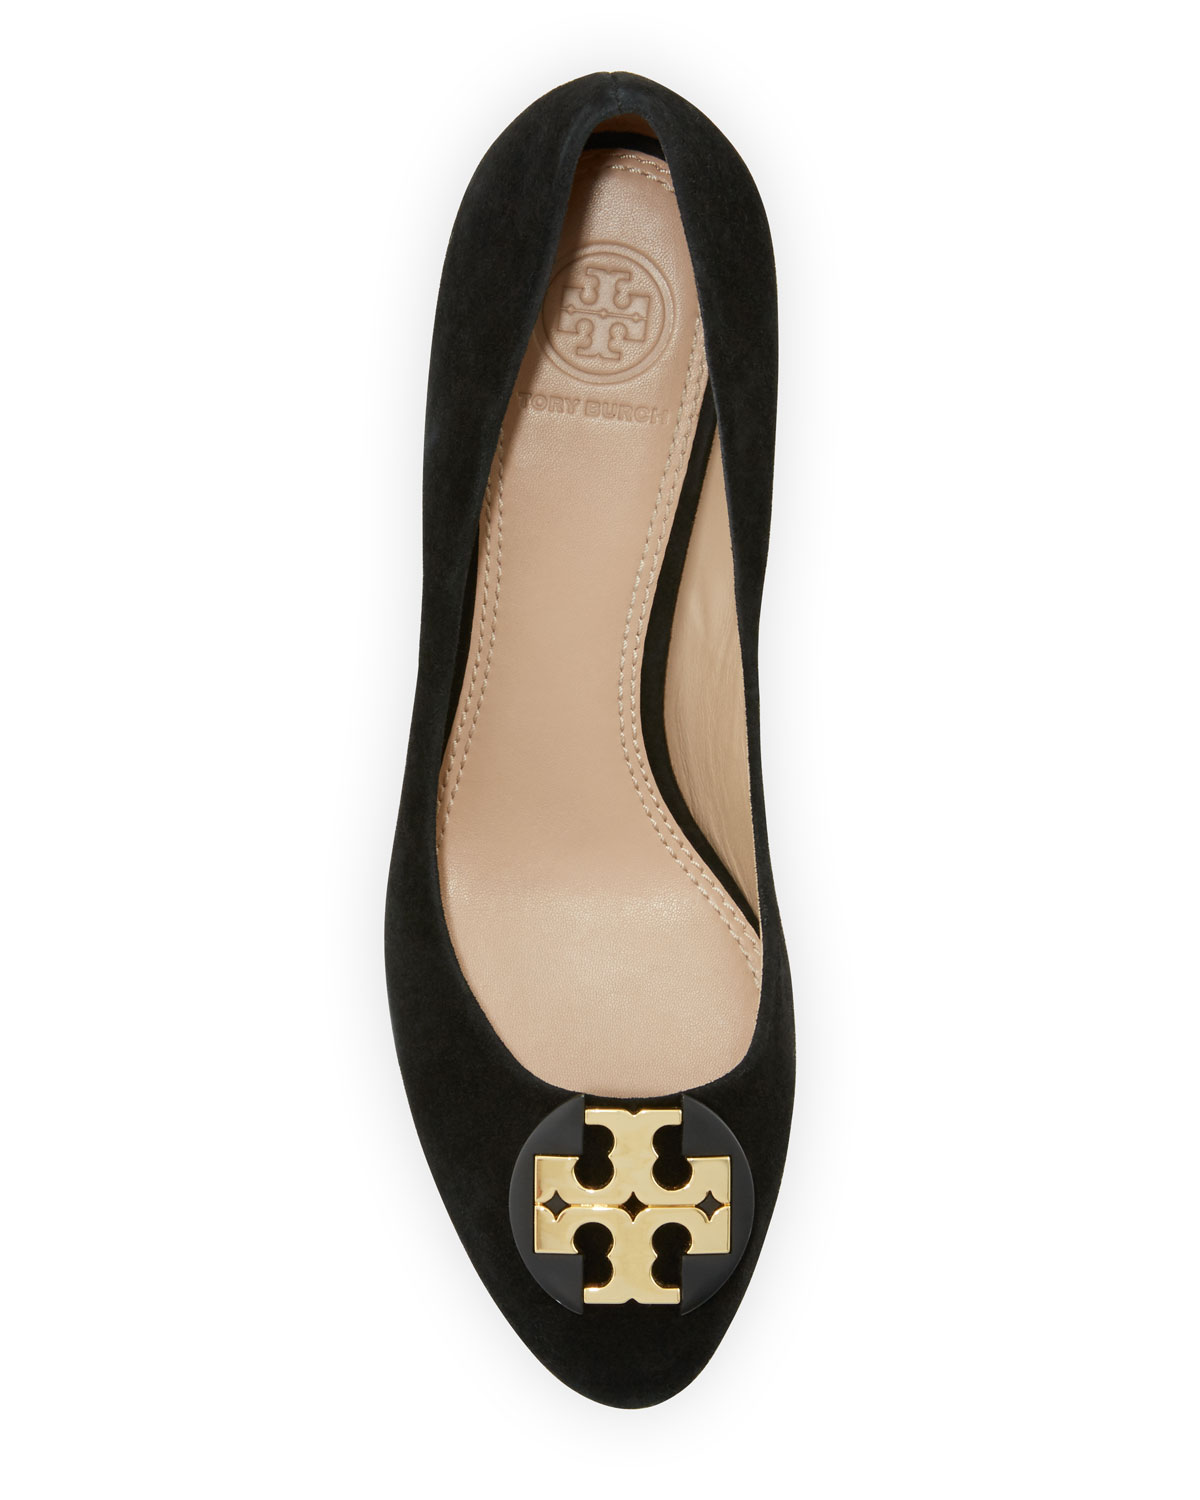 1b59d139e0d325 Tory Burch Luna Suede 65mm Wedge Pump